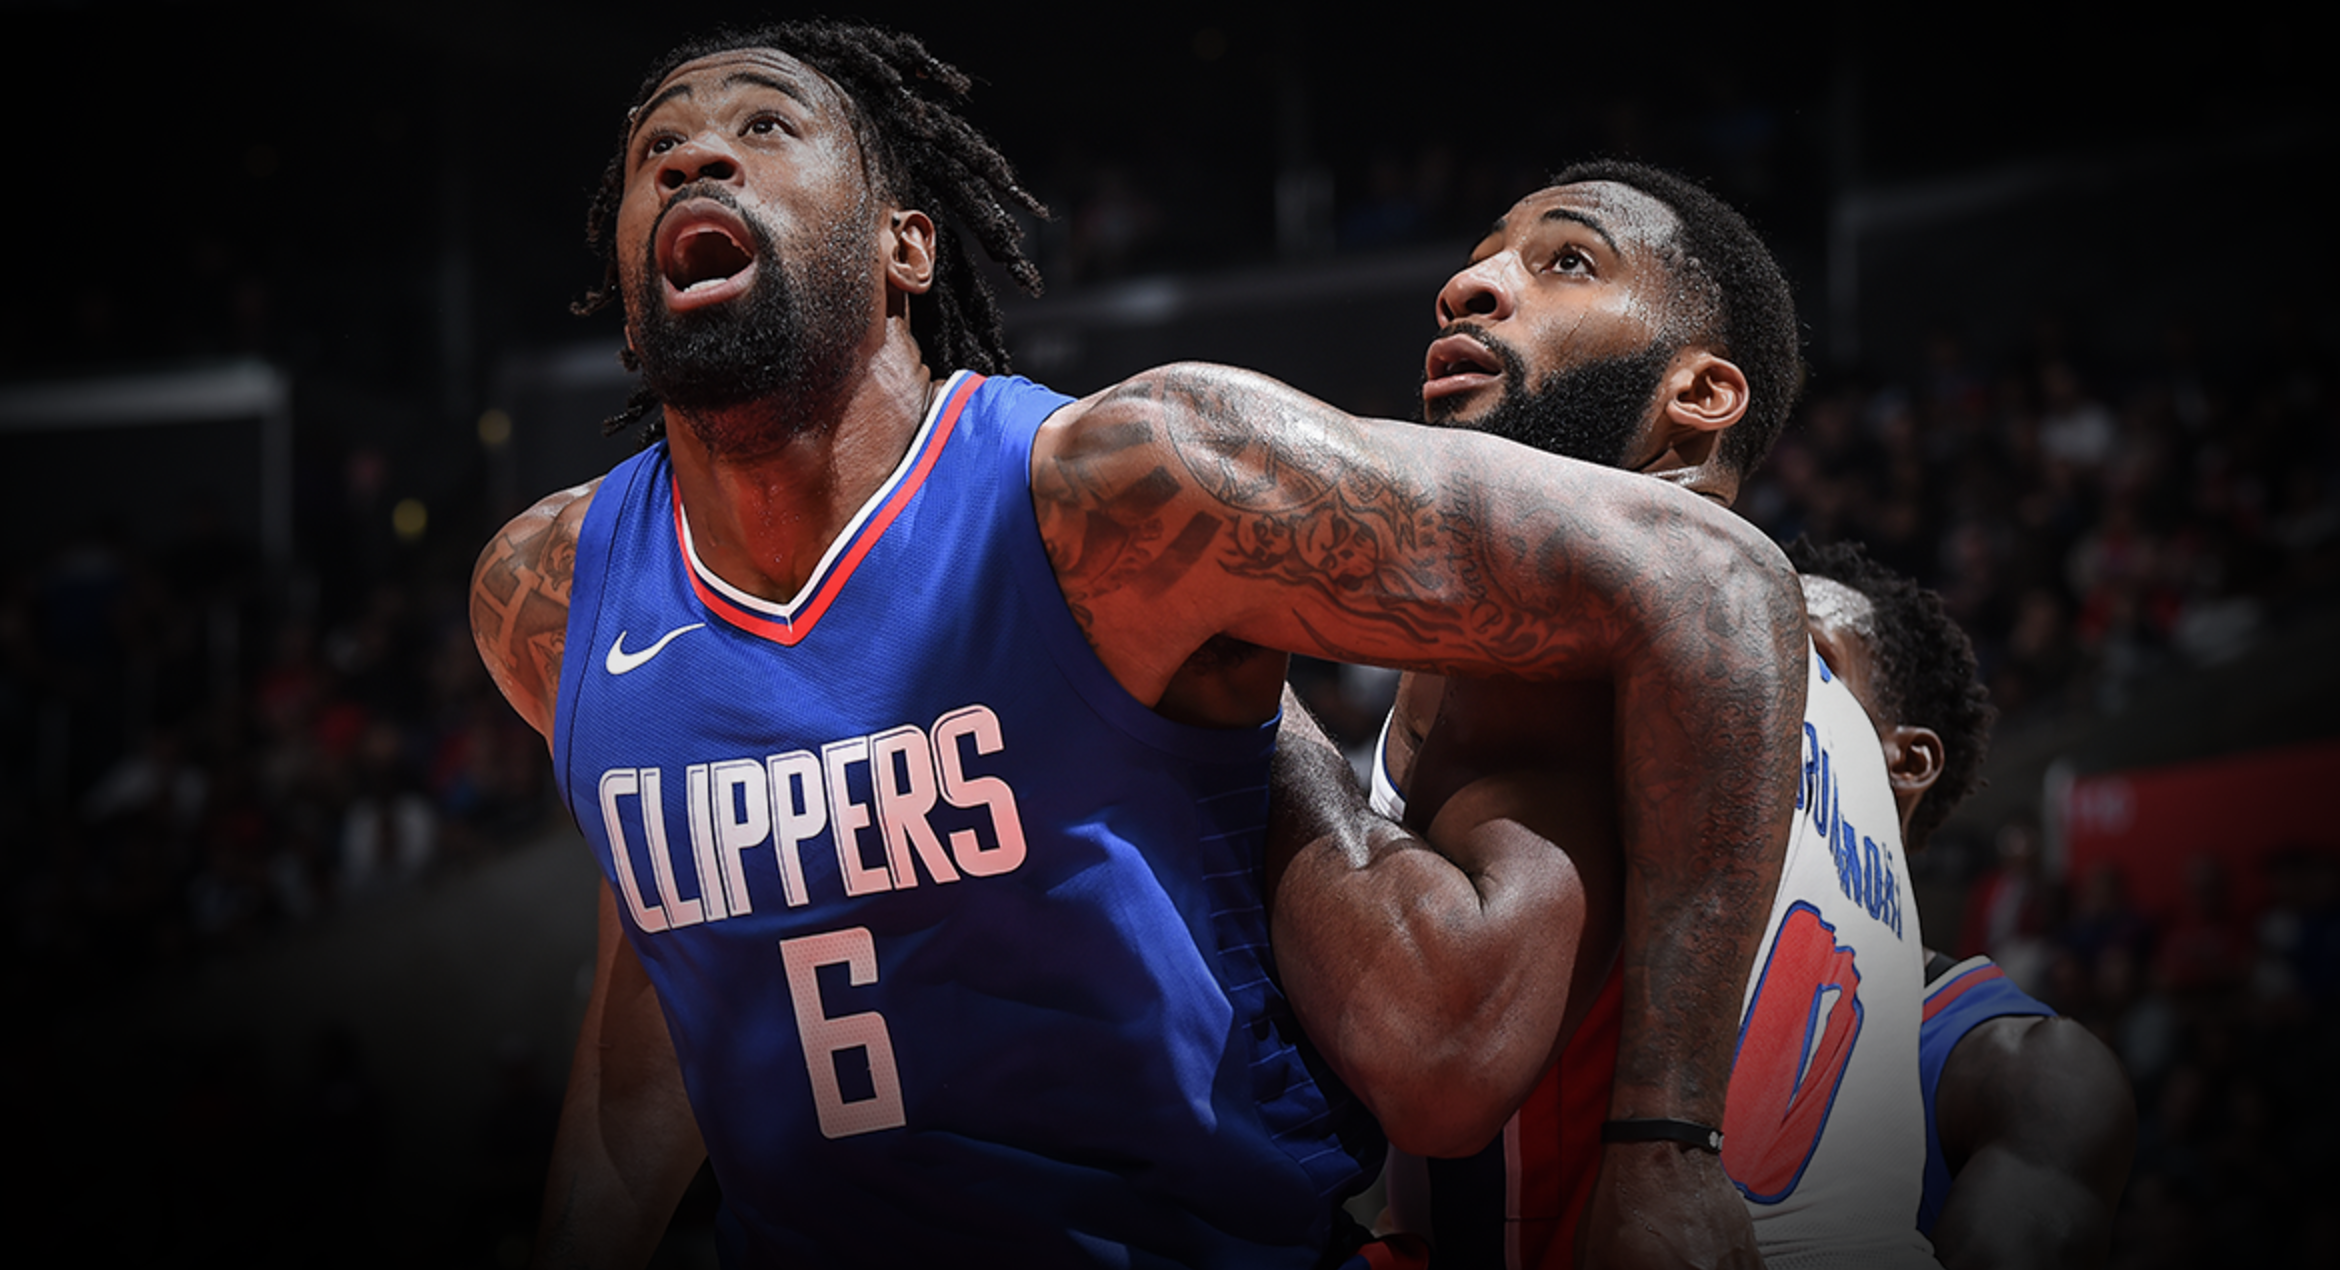 Clippers take on Griffin-led Pistons for first time